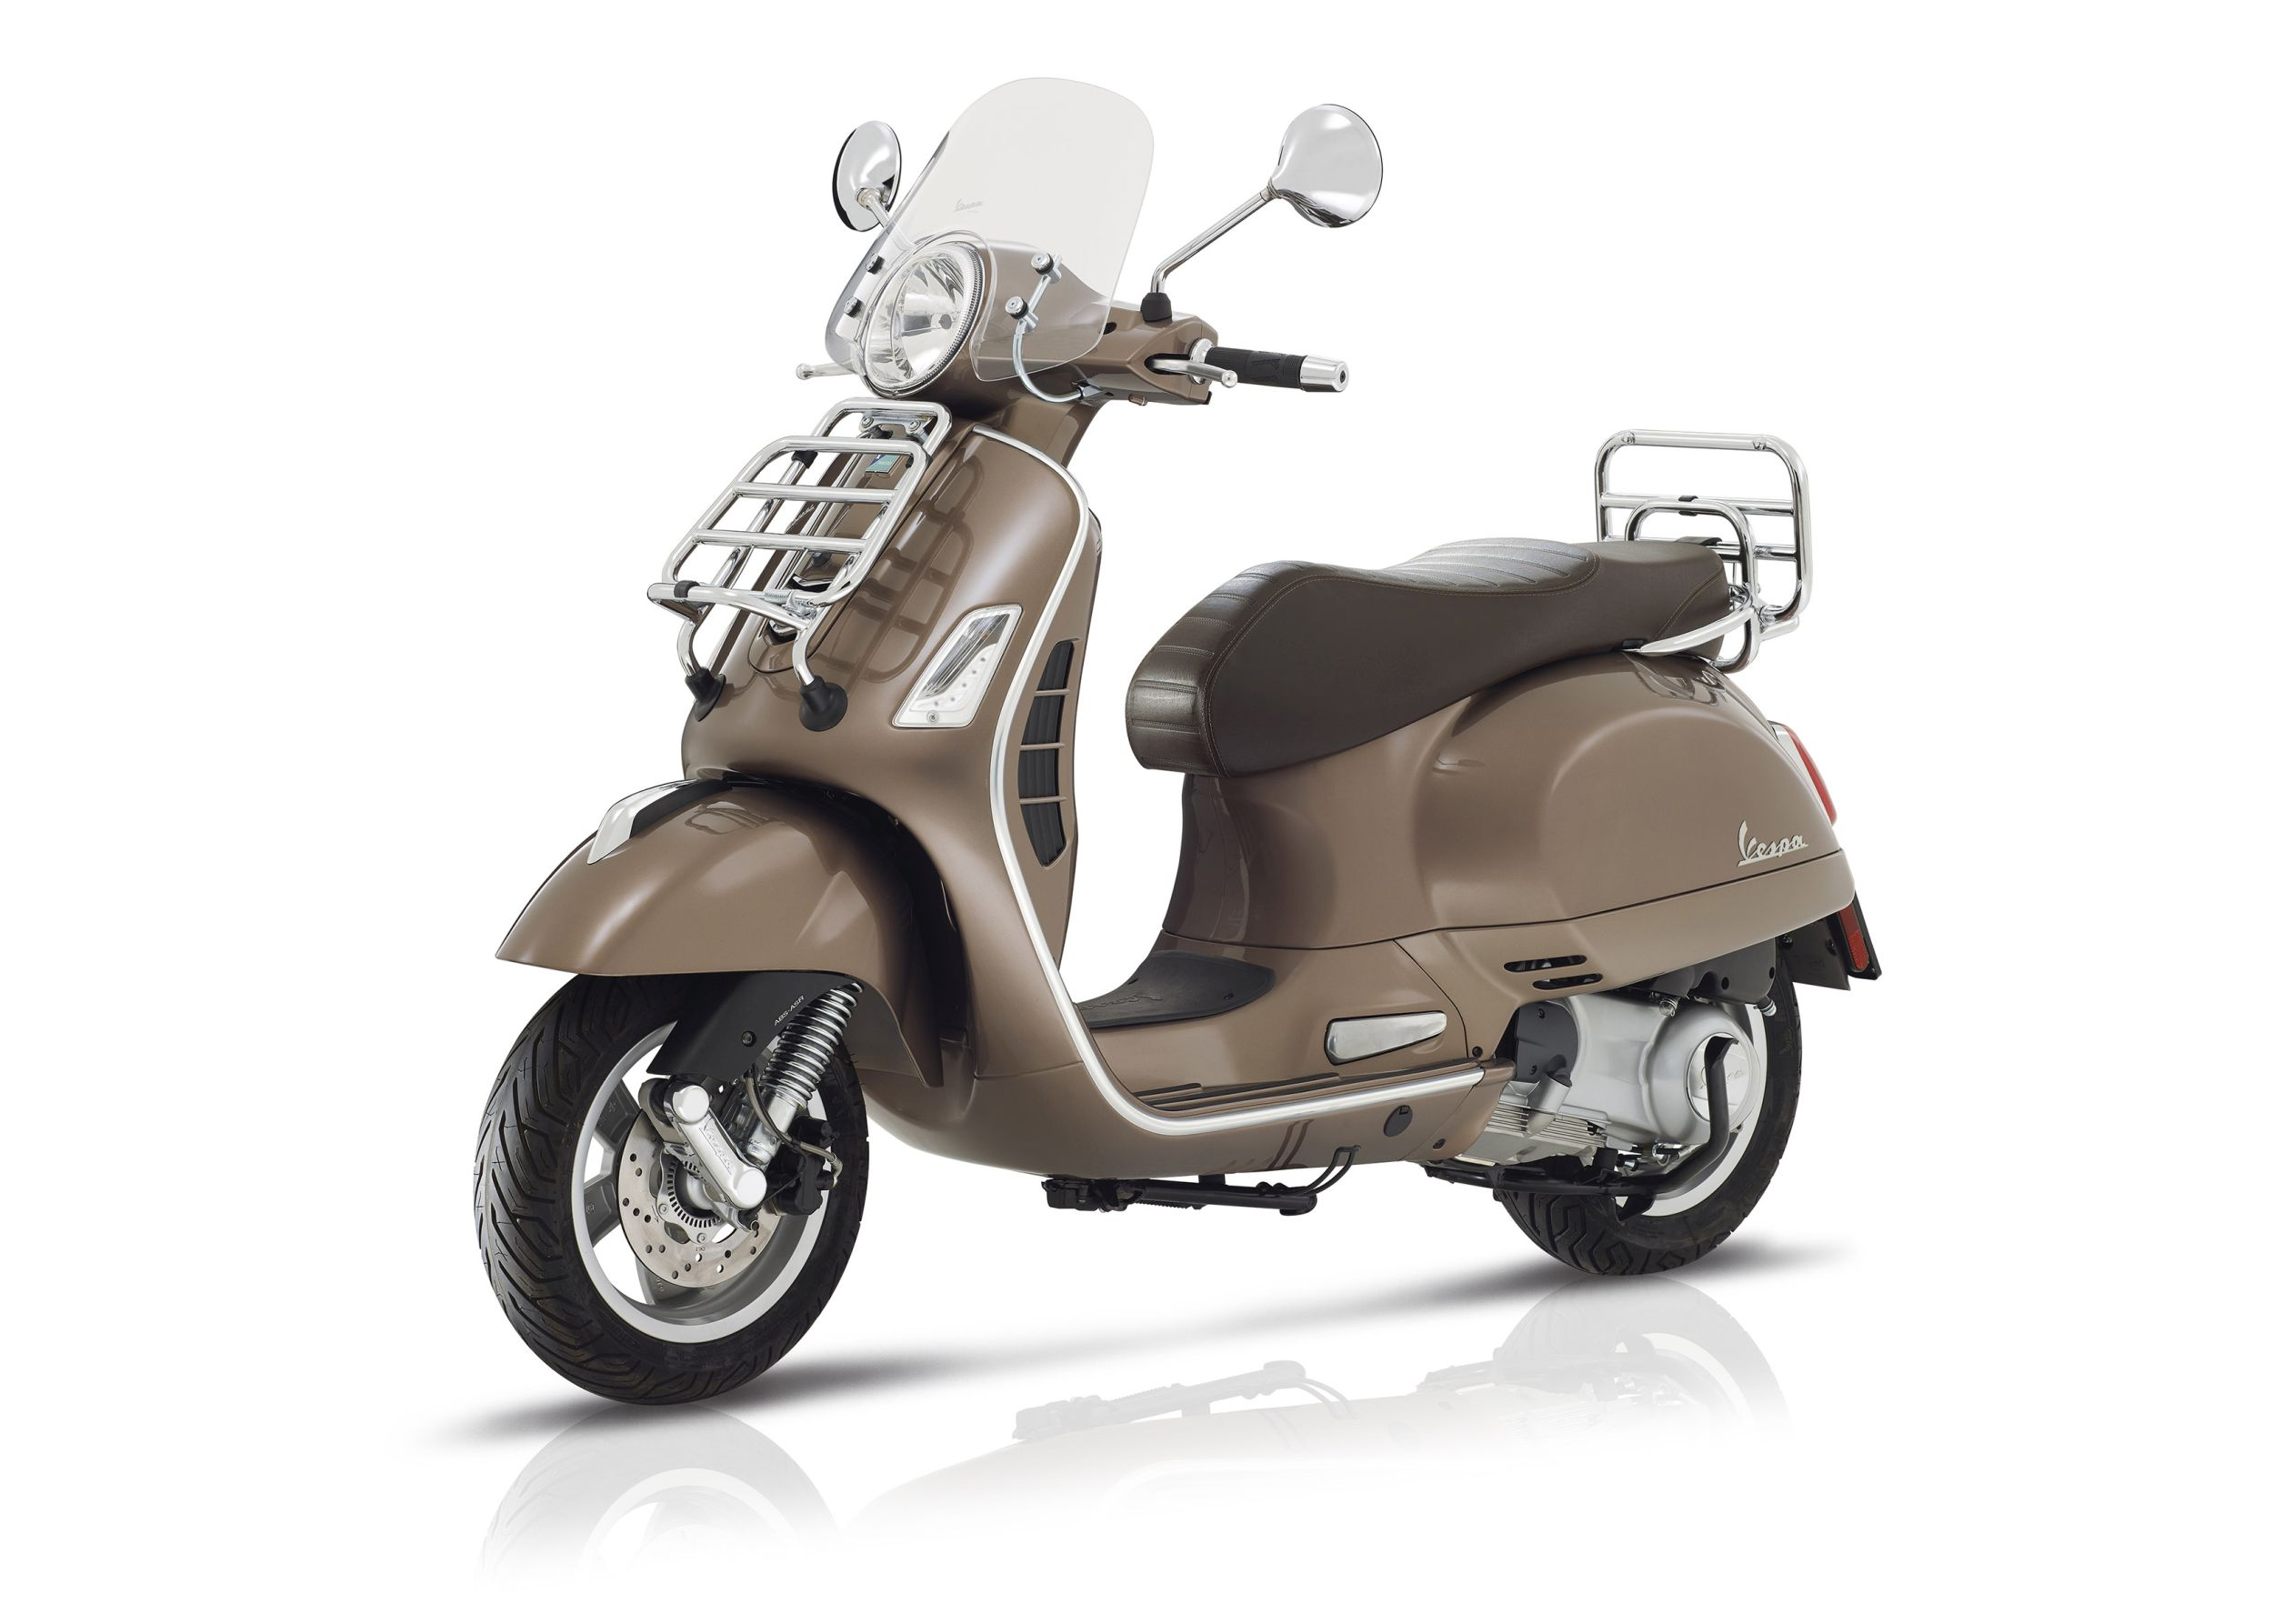 vespa gts 300 i e touring all technical data of the model gts 300 i e touring from vespa. Black Bedroom Furniture Sets. Home Design Ideas